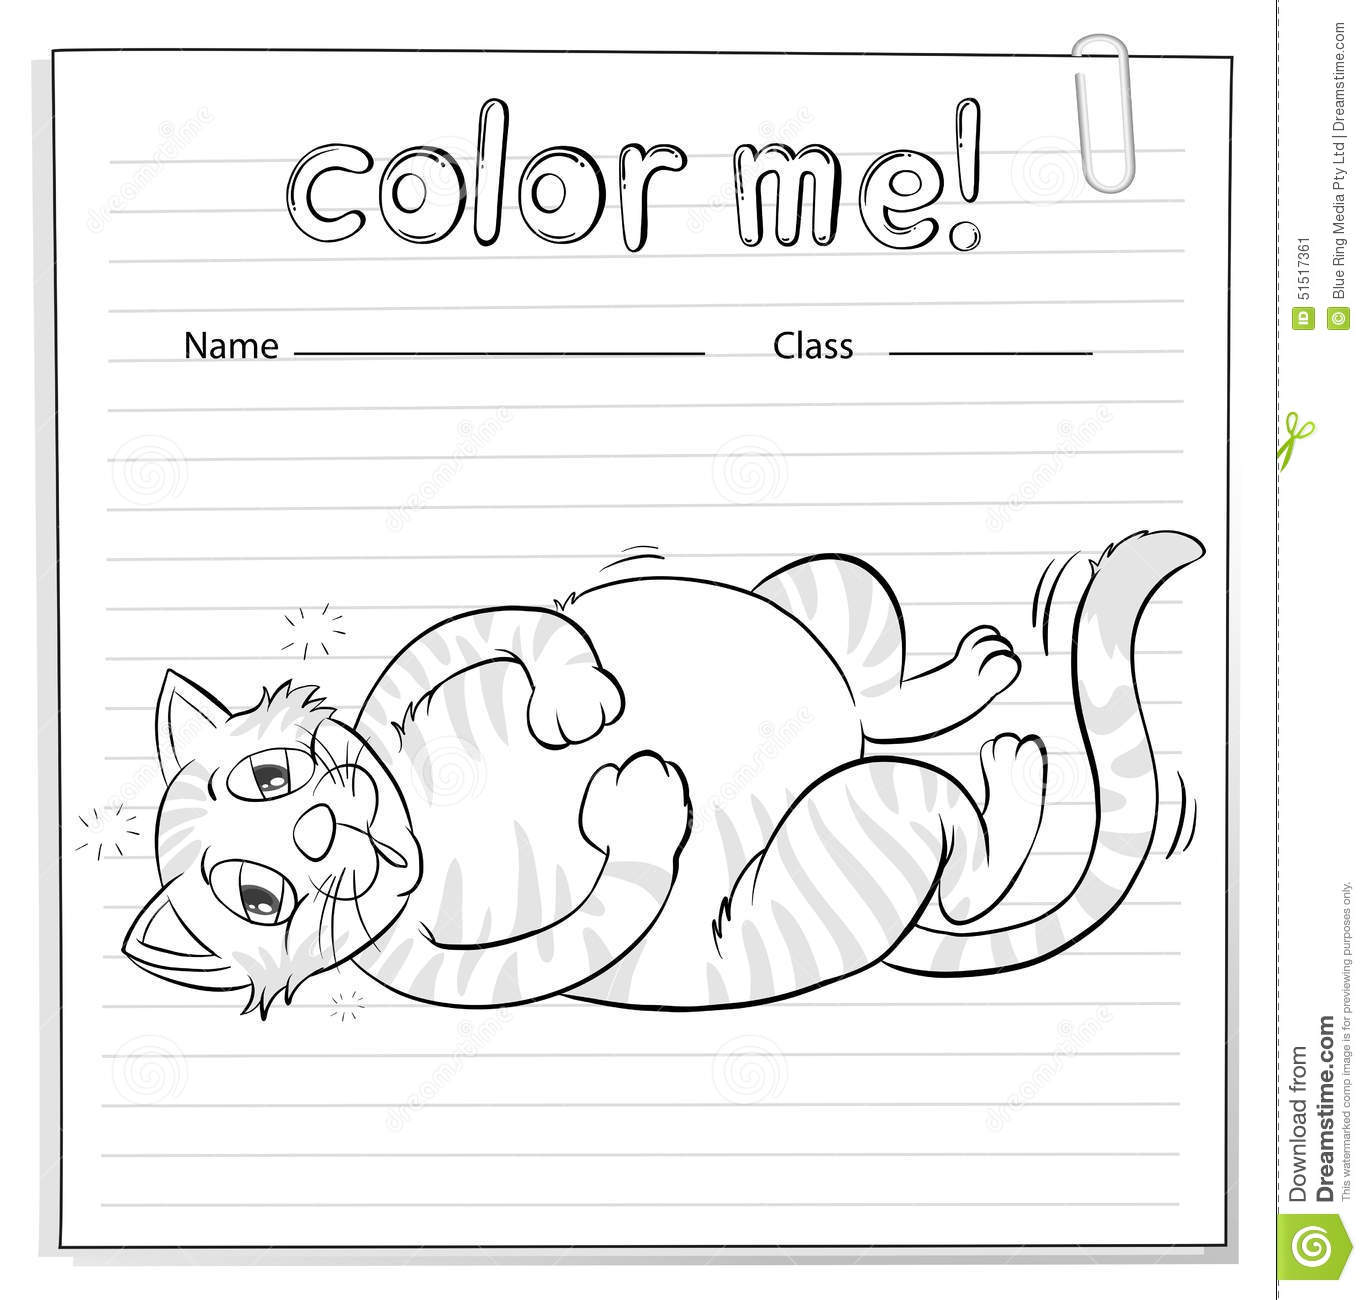 Coloring Worksheet With A Cat Stock Vector